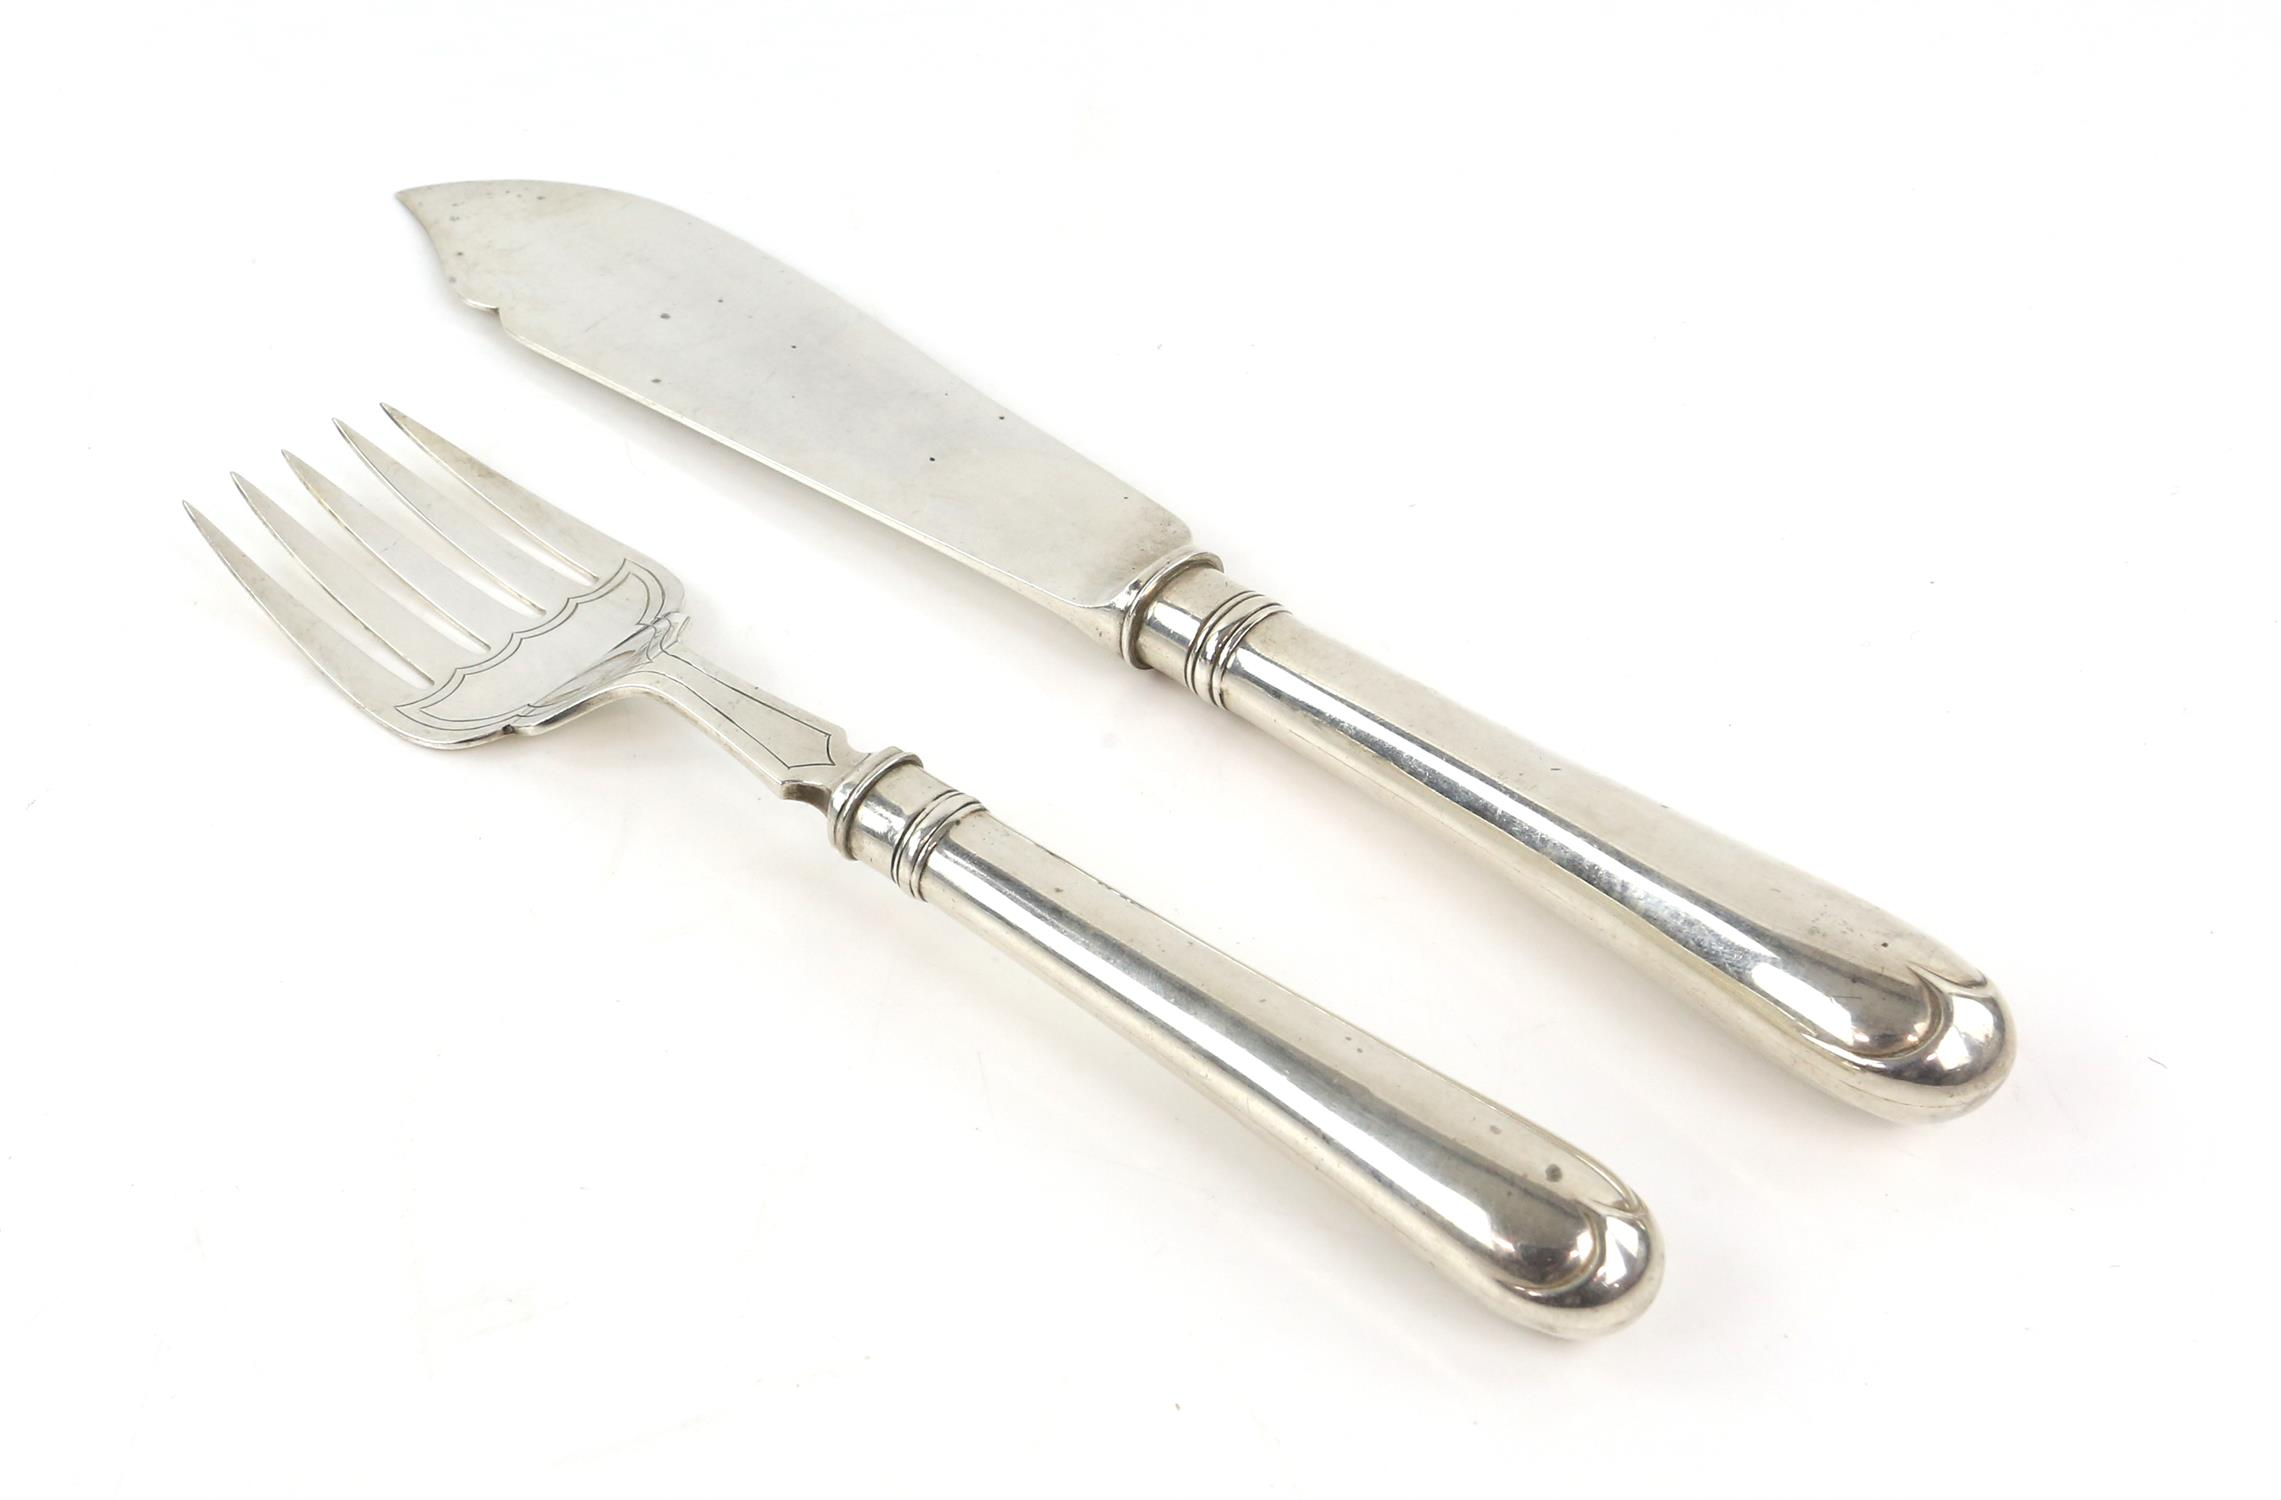 Two silver fish servers, including a knife and fork, Thomas Bradbury & Sons, Sheffield 1928, - Image 2 of 4